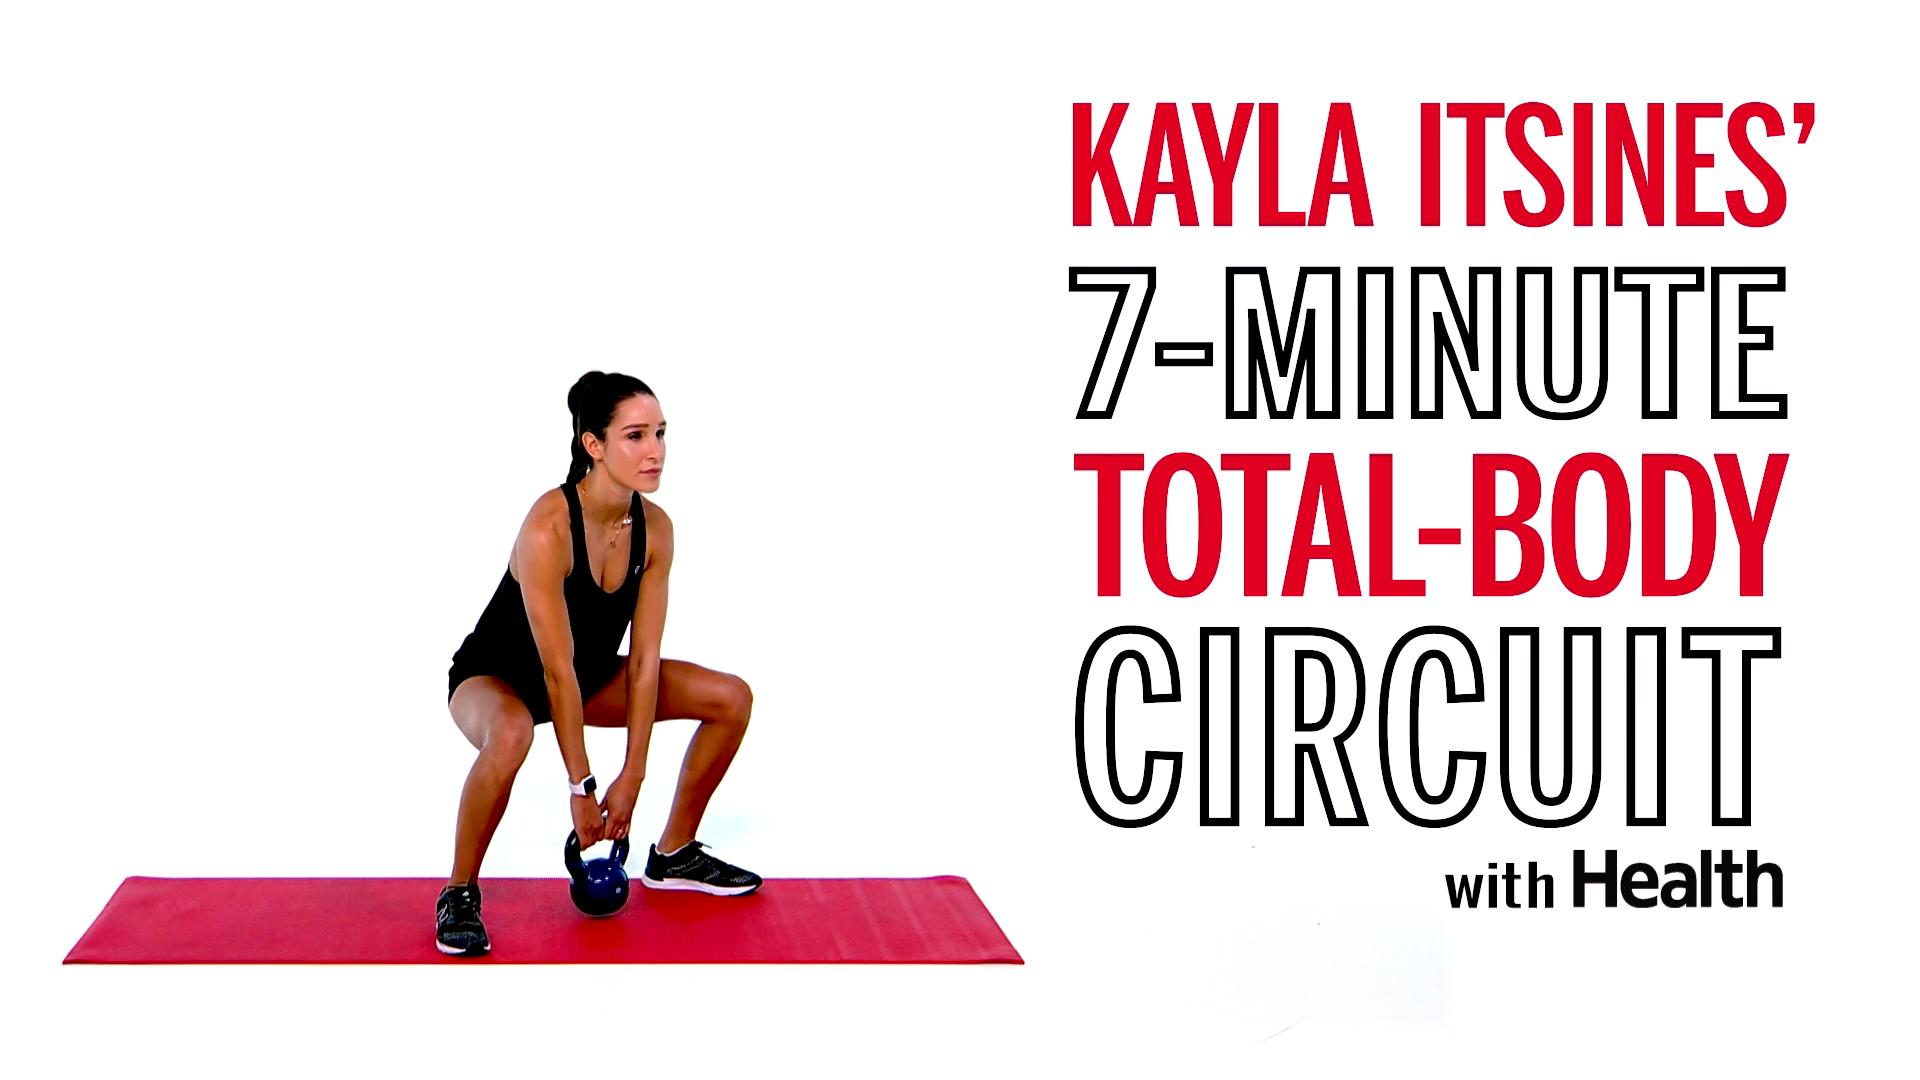 Kayla Itsines' 7-Minute Total-Body Circuit